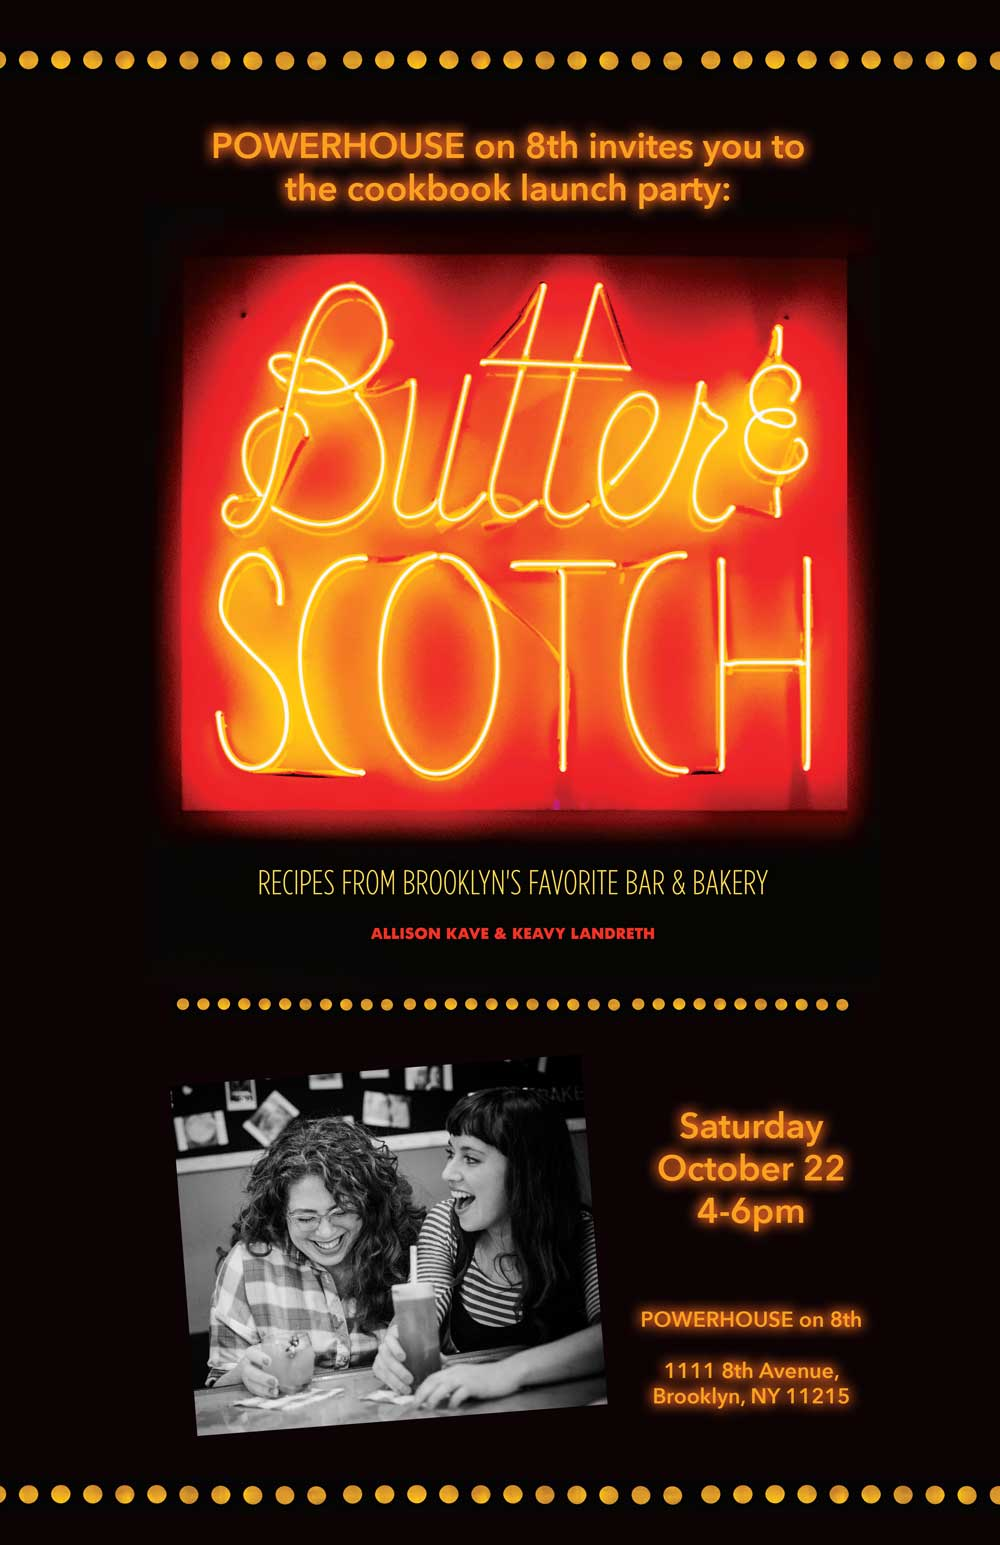 Cookbook Launch: Butter & Scotch: Recipes from Brooklyn's Favorite Bar and Bakery by Allison Kave and Keavy Landreth